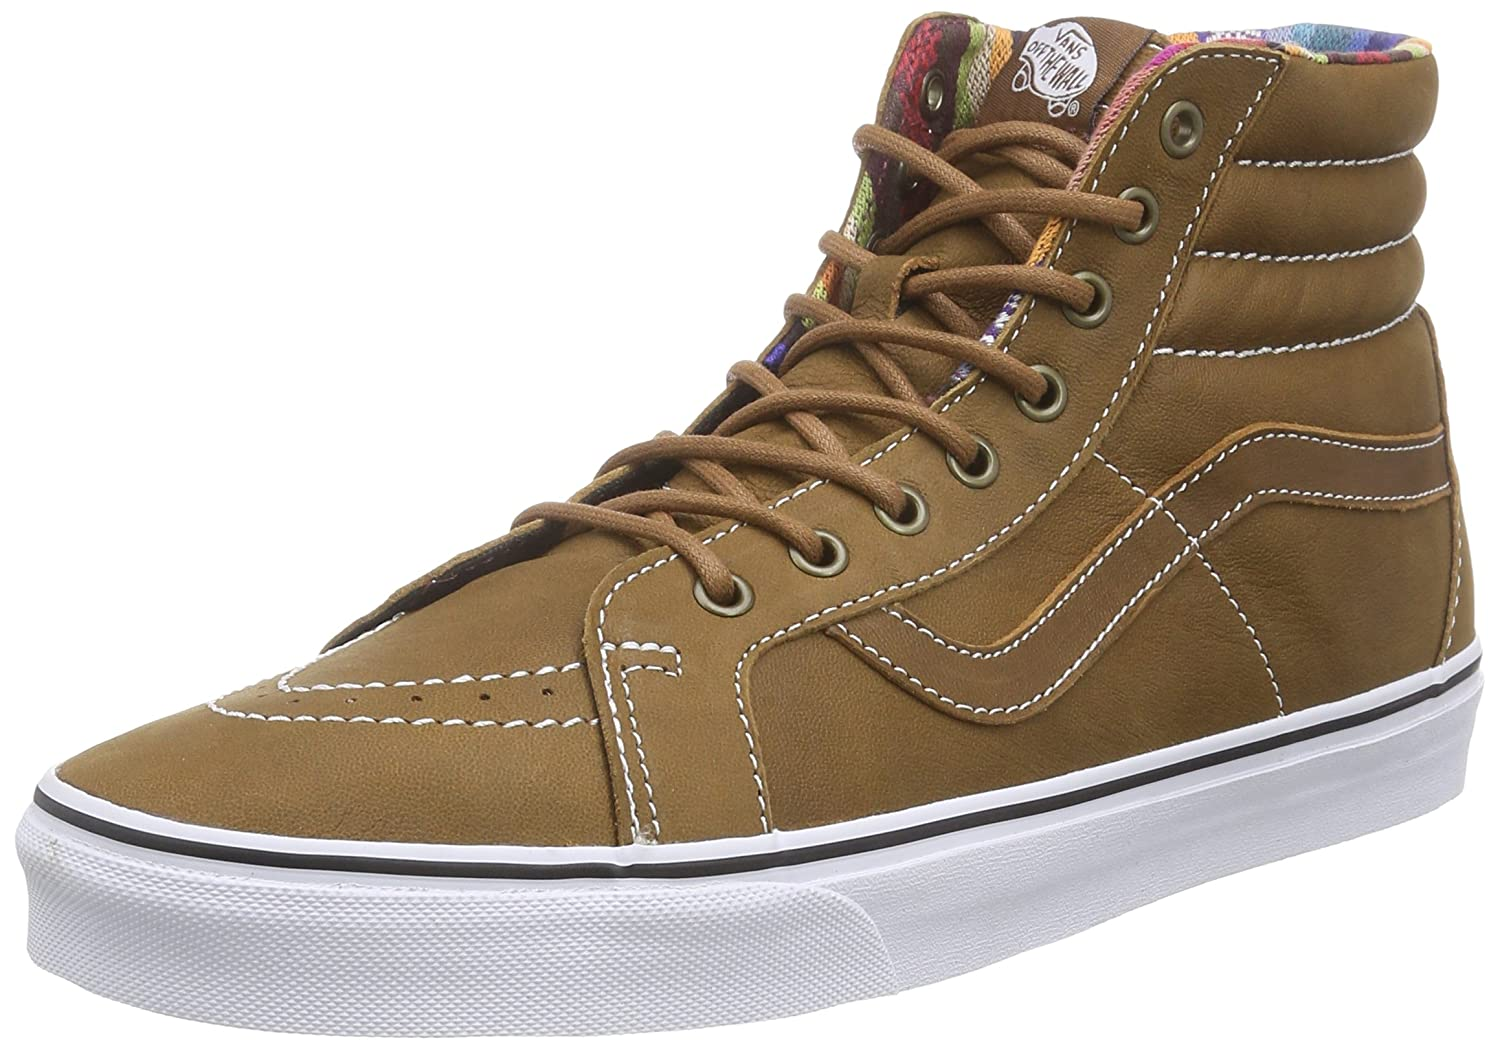 VANS MENS SK8 HI REISSUE LEATHER SHOES B00WVUCK78 9.5 B(M) US Women / 8 D(M) US Men|Brown/Guate